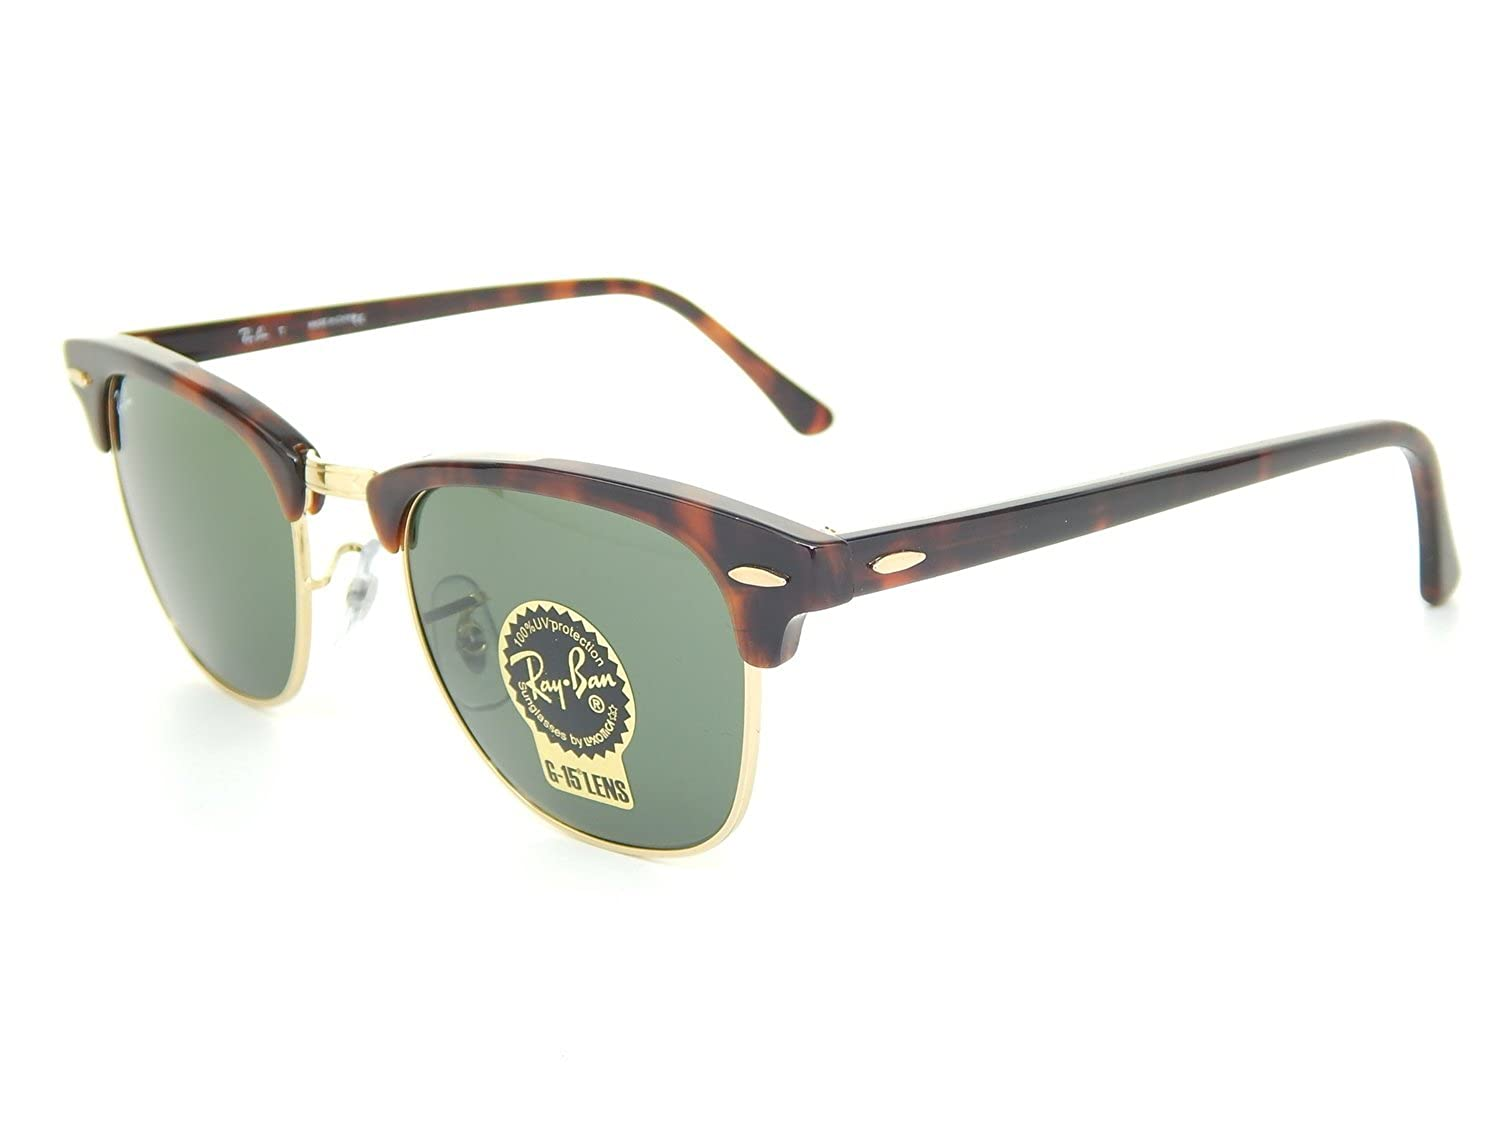 1094be90d23 Ray-Ban RB 3016 W0366 Clubmaster Mock Tortoise   Green Crystal Lens Frame  Size  51mm  Amazon.co.uk  Shoes   Bags